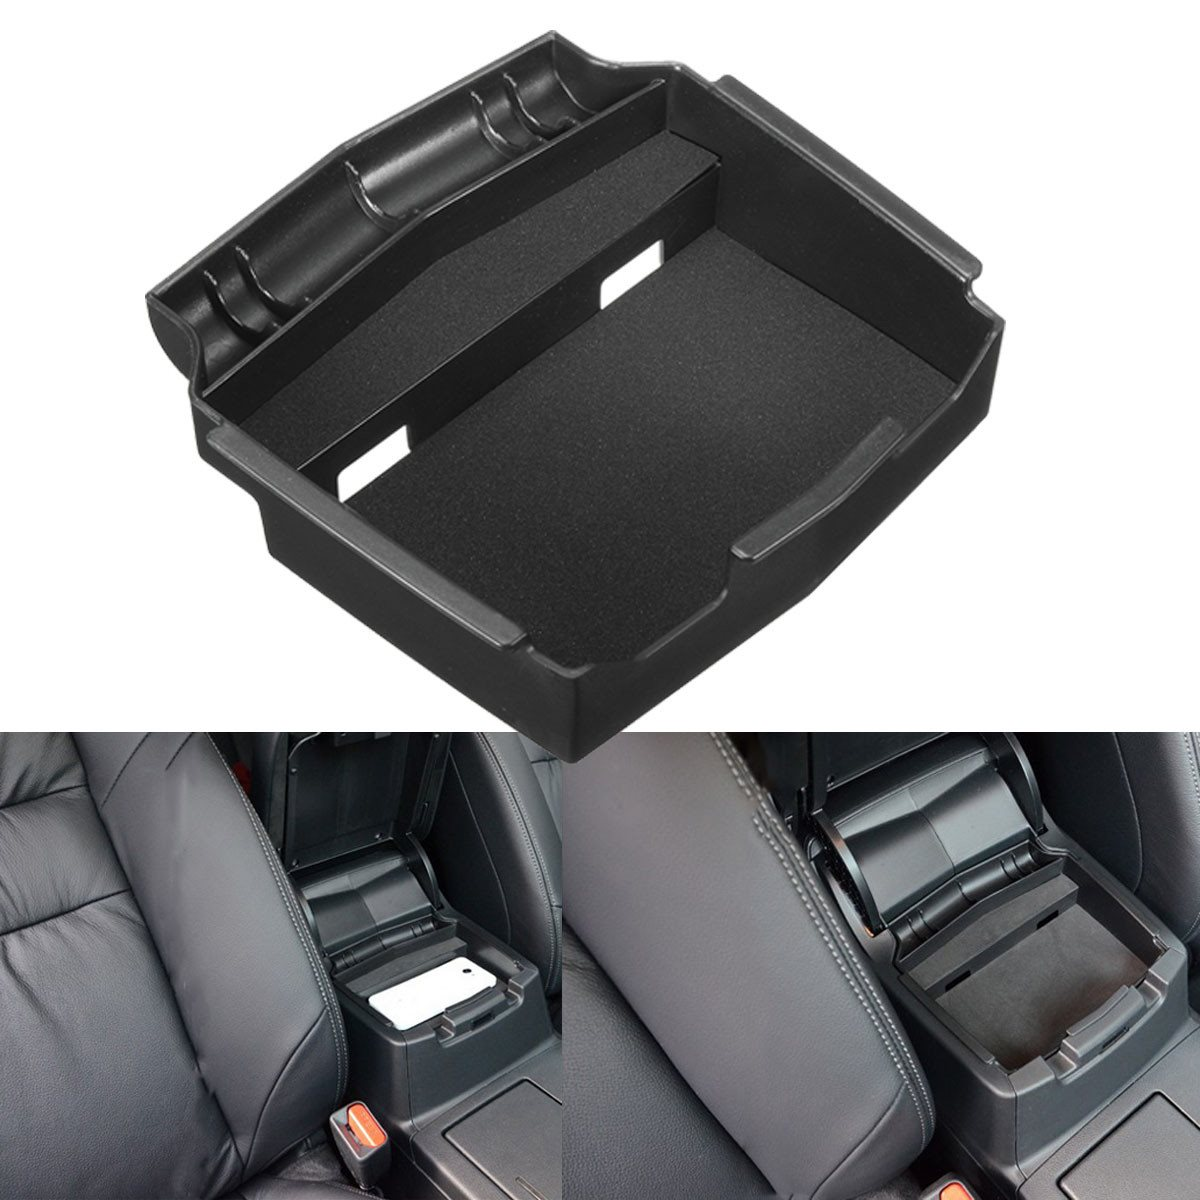 Storage-Box Interior-Accessories Honda Crv Central Stowing Tidying Multifunction Car title=